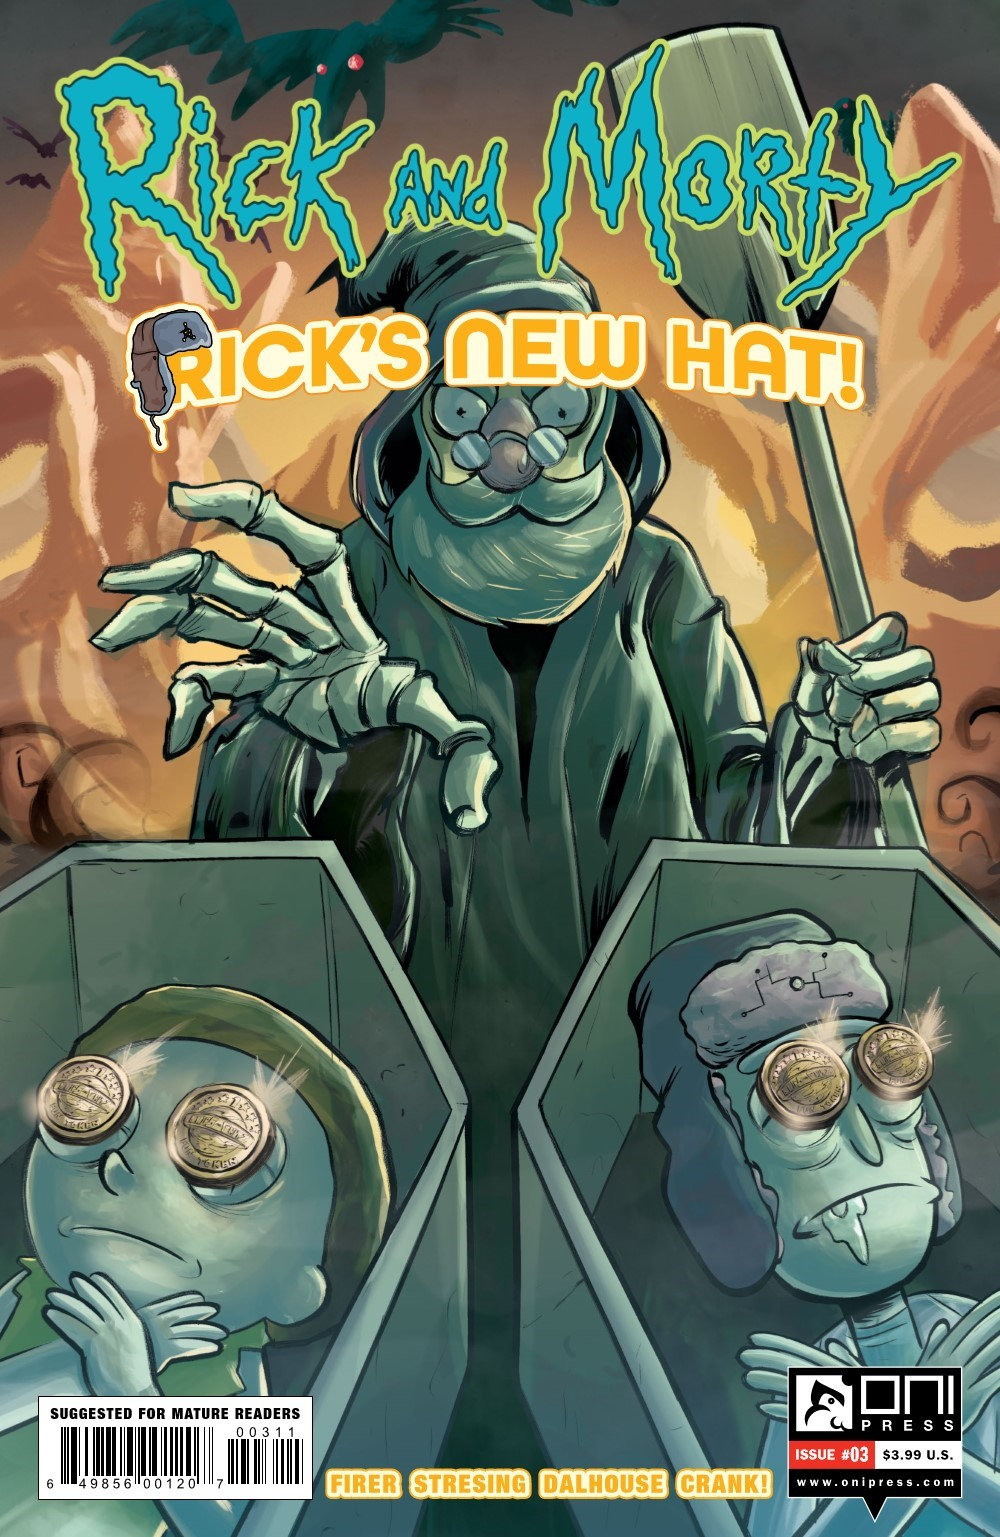 RM-RNH-3-REFERENCE-01 ComicList: Oni Press New Releases for 10/06/2021